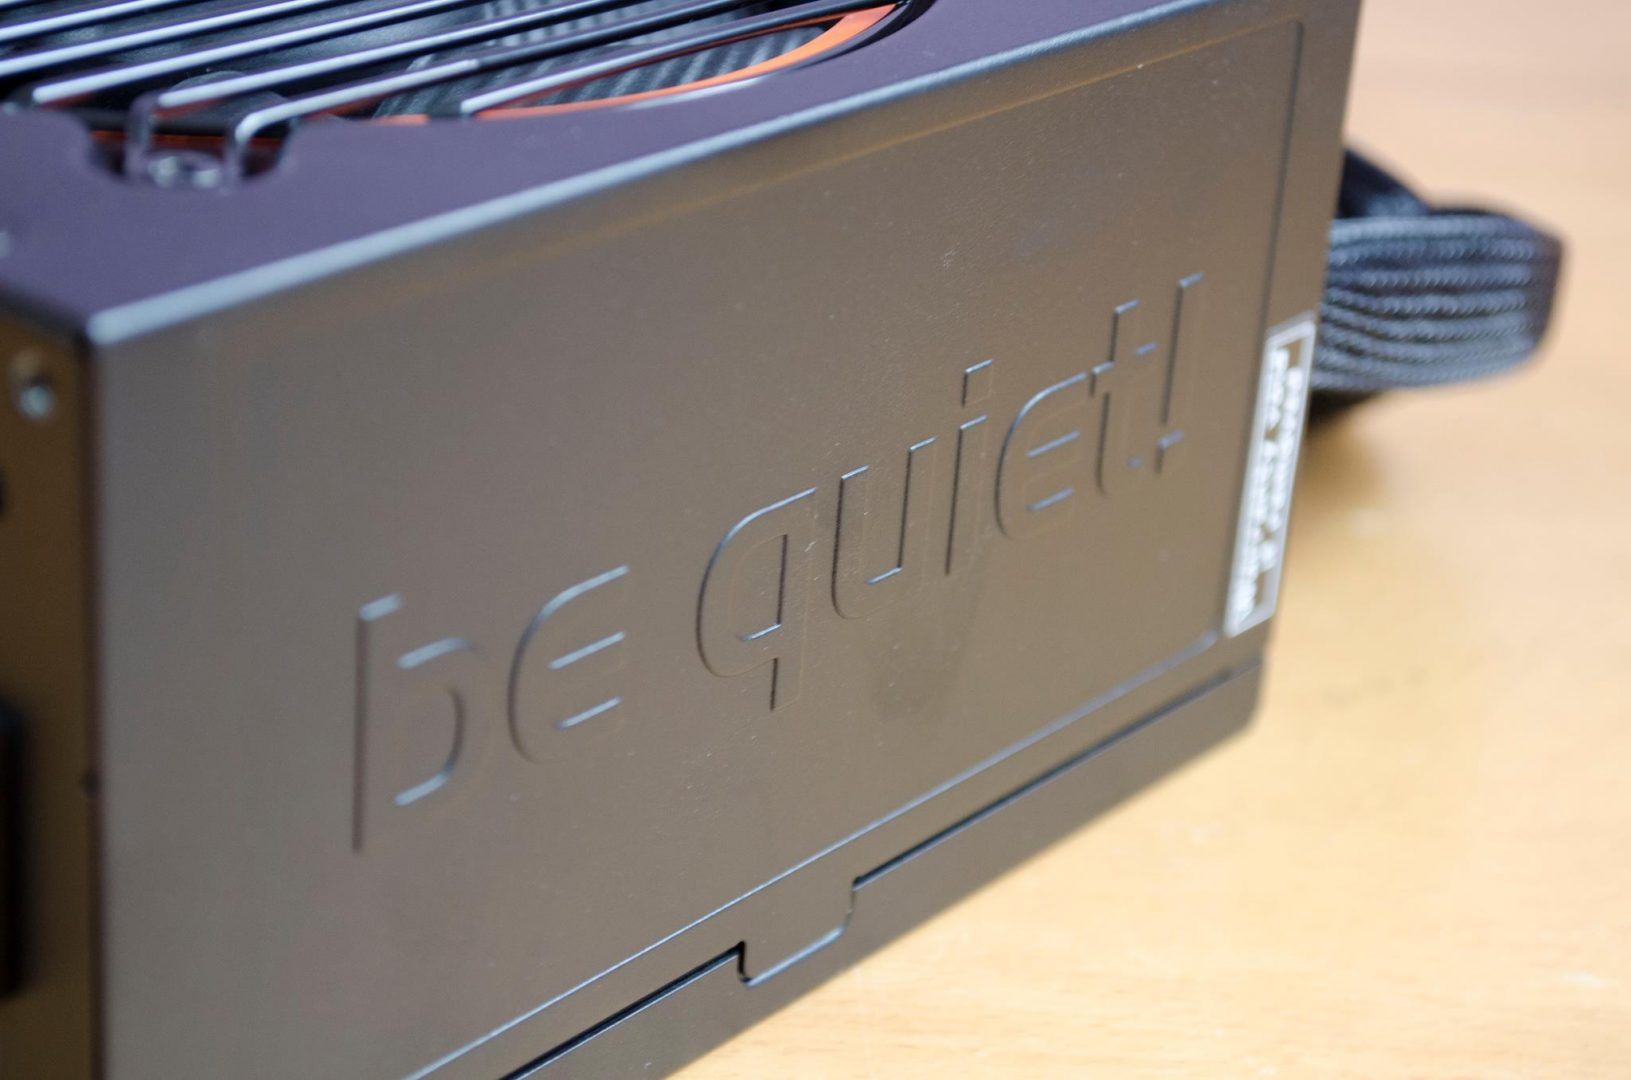 be quiet pure power 10 600w psu_5